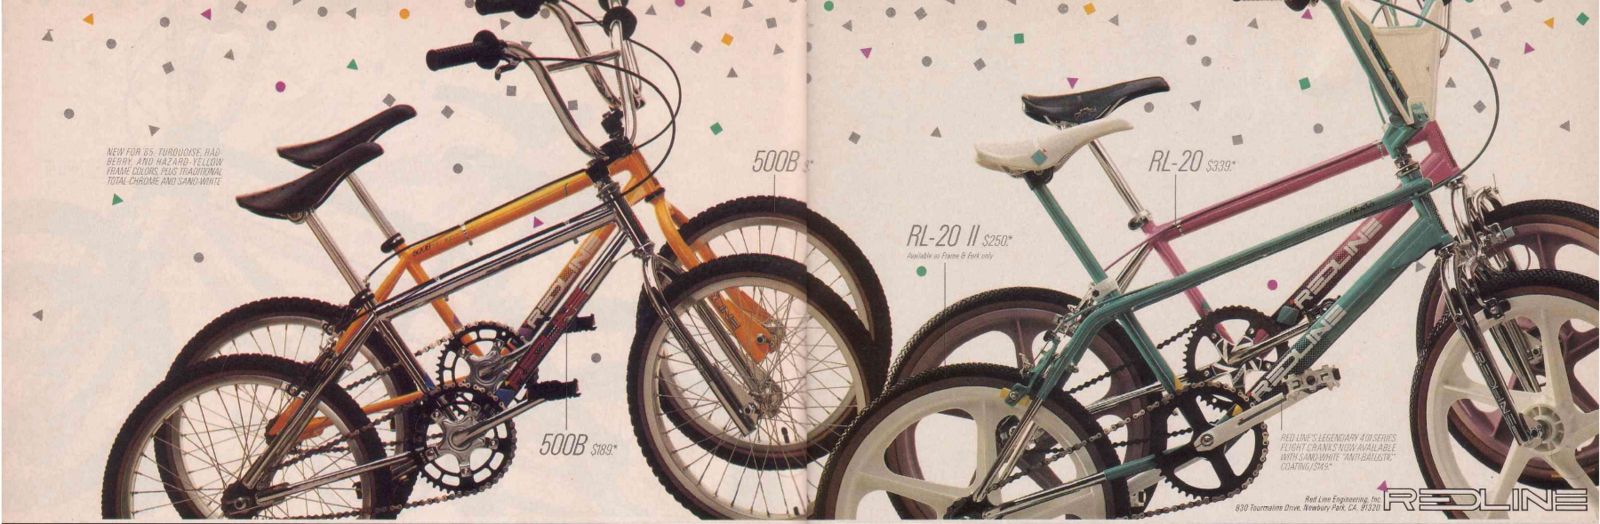 https://s3.amazonaws.com/uploads.bmxmuseum.com/user-images/277141/first-rl20ii-ad---bmx-action-may-19855f89388f28.png